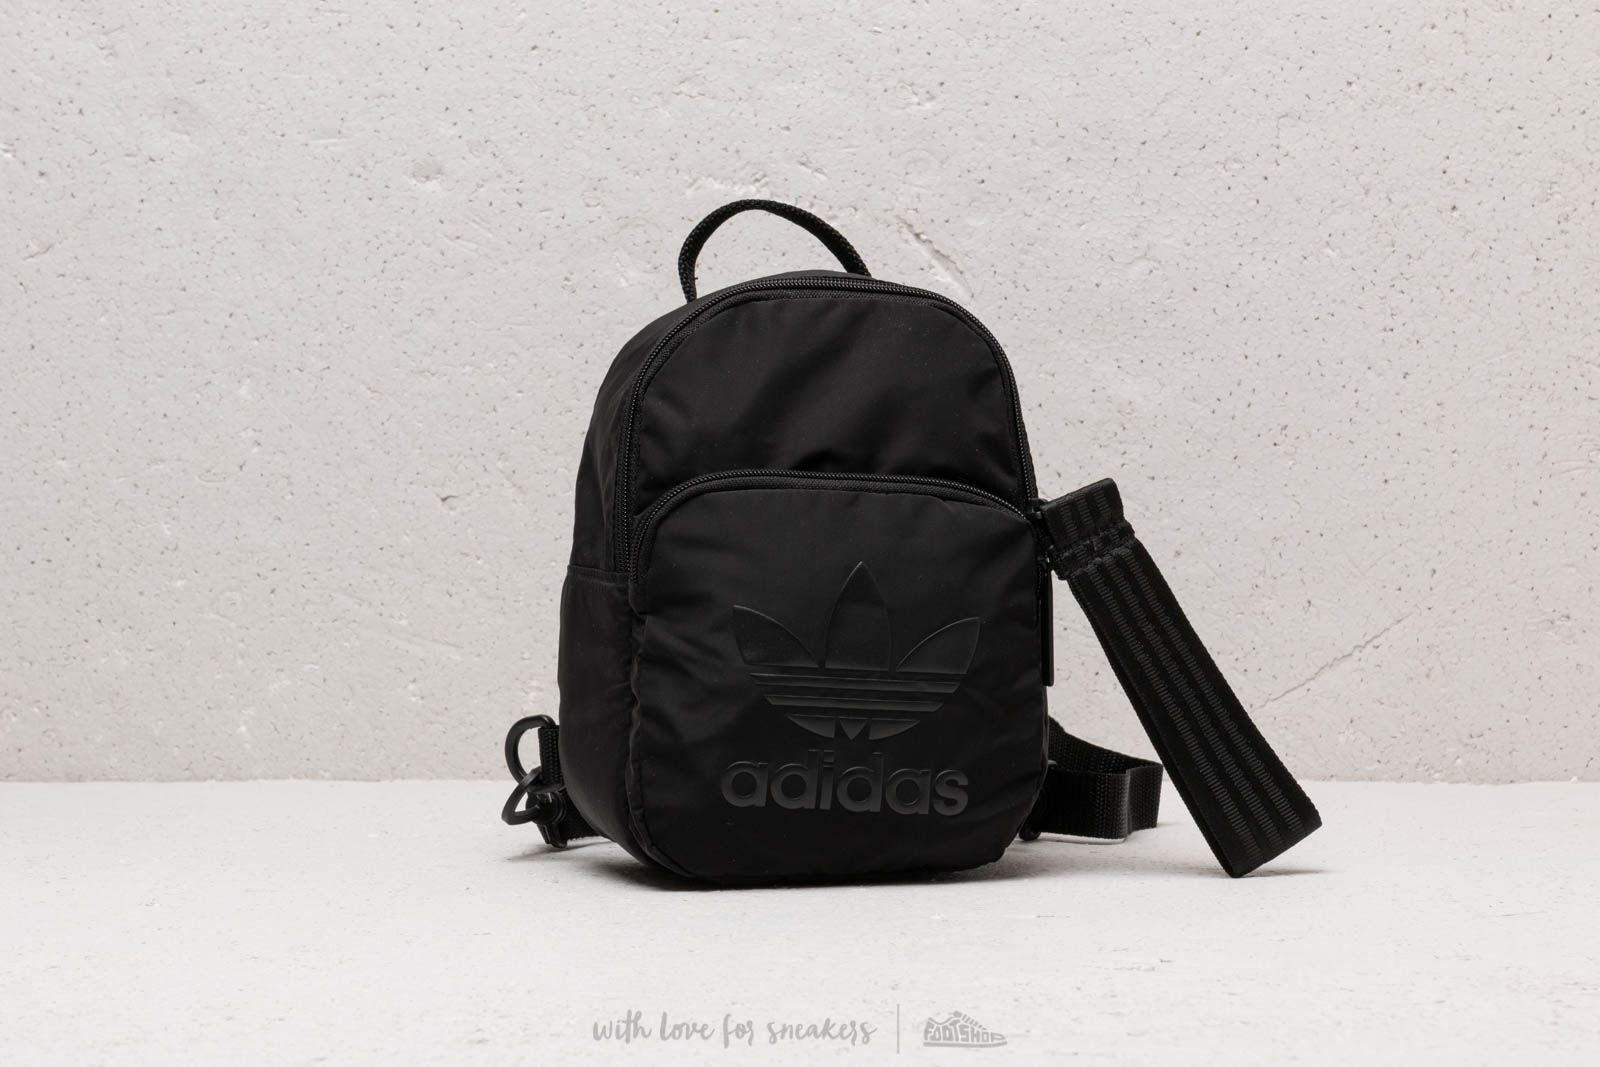 adidas Classic Mini Backpack Black